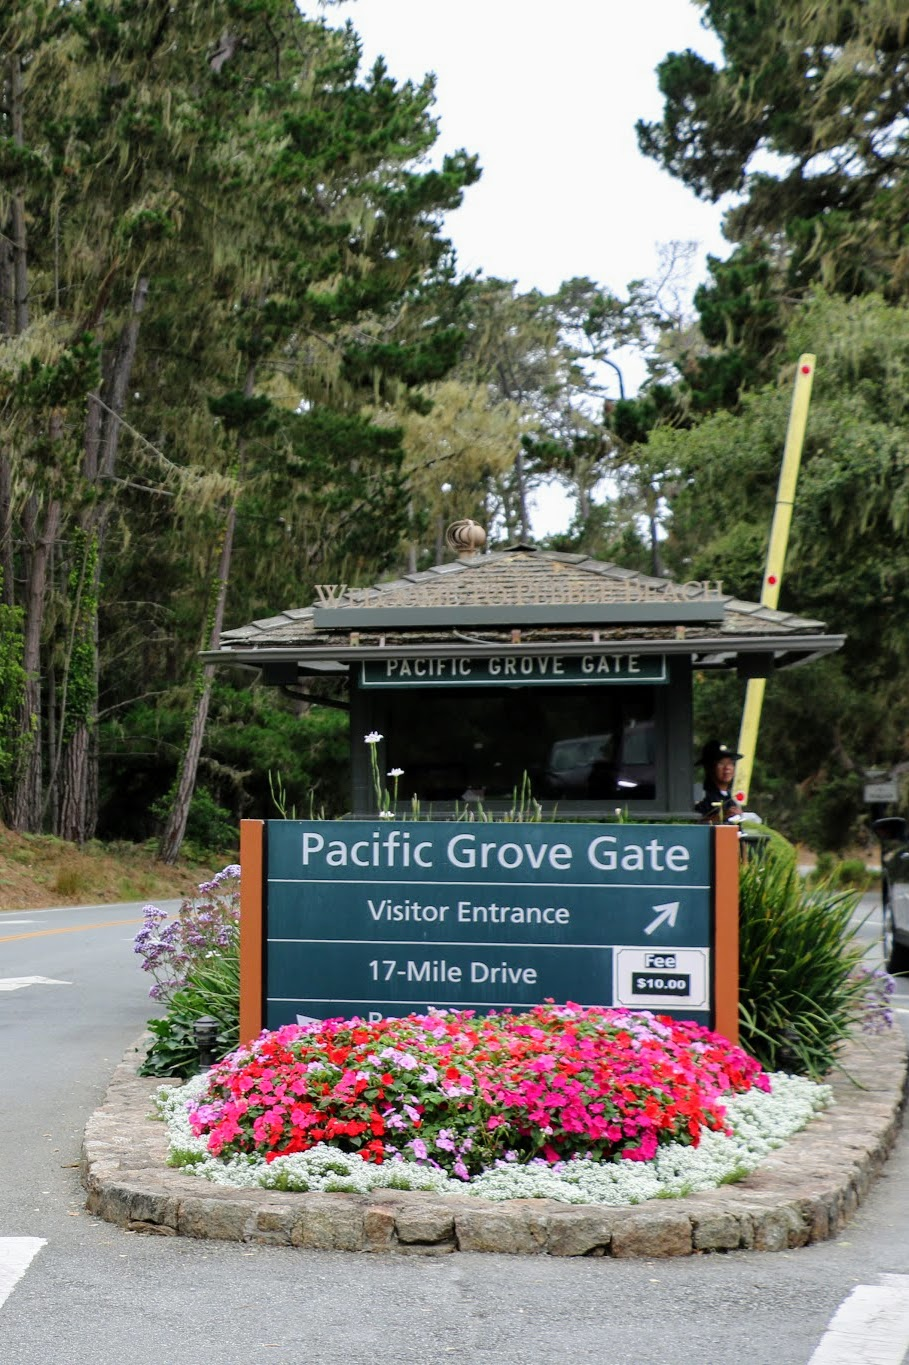 Pacific Grove Gate 17-Mile drive